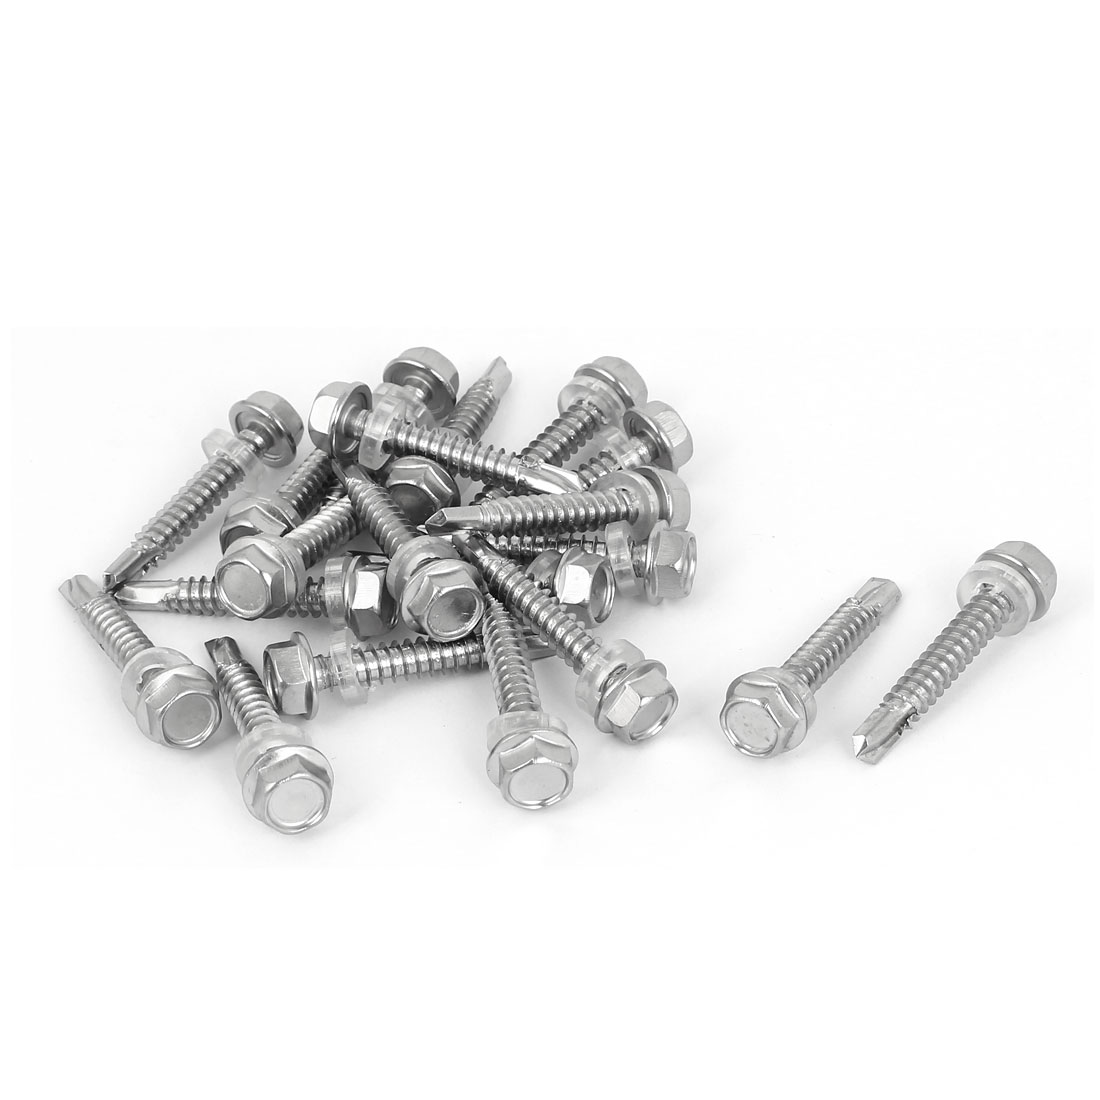 M6.3 x 38mm Thread 410 Stainless Steel Self Drilling Screw Bolt w Washer 20 Pcs